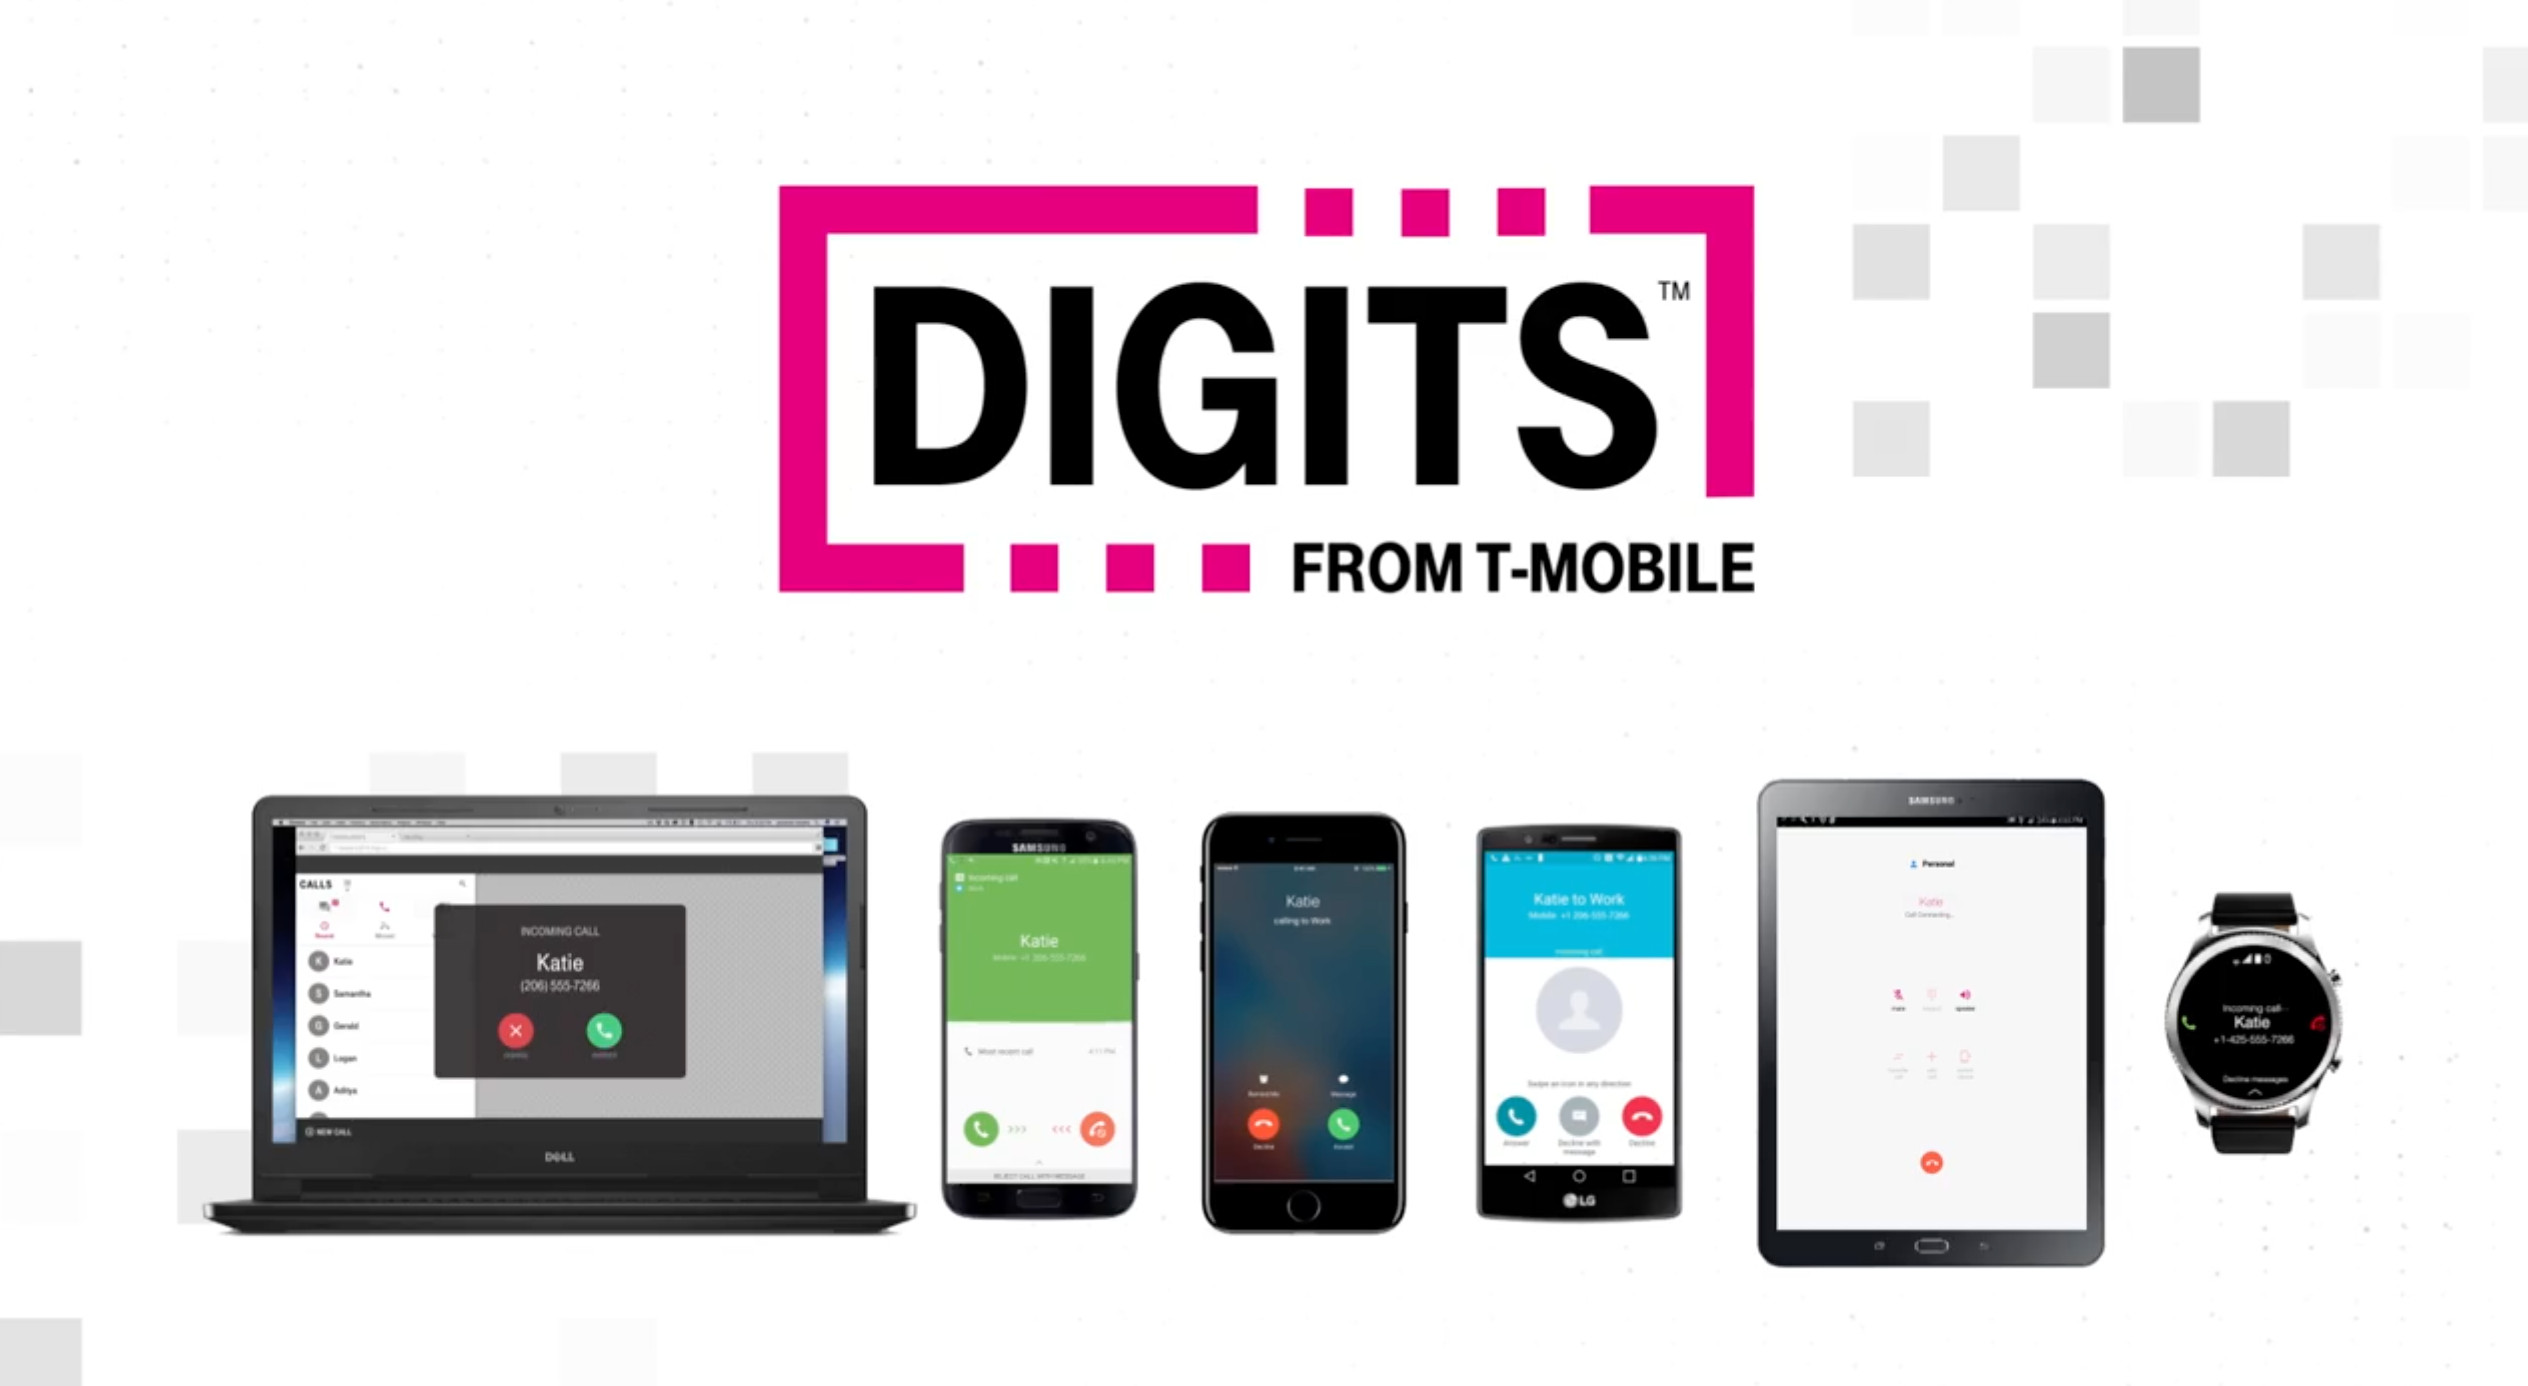 T mobile announces digits one phone number for all your devices t mobile announces digits one phone number for all your devices the verge kristyandbryce Image collections